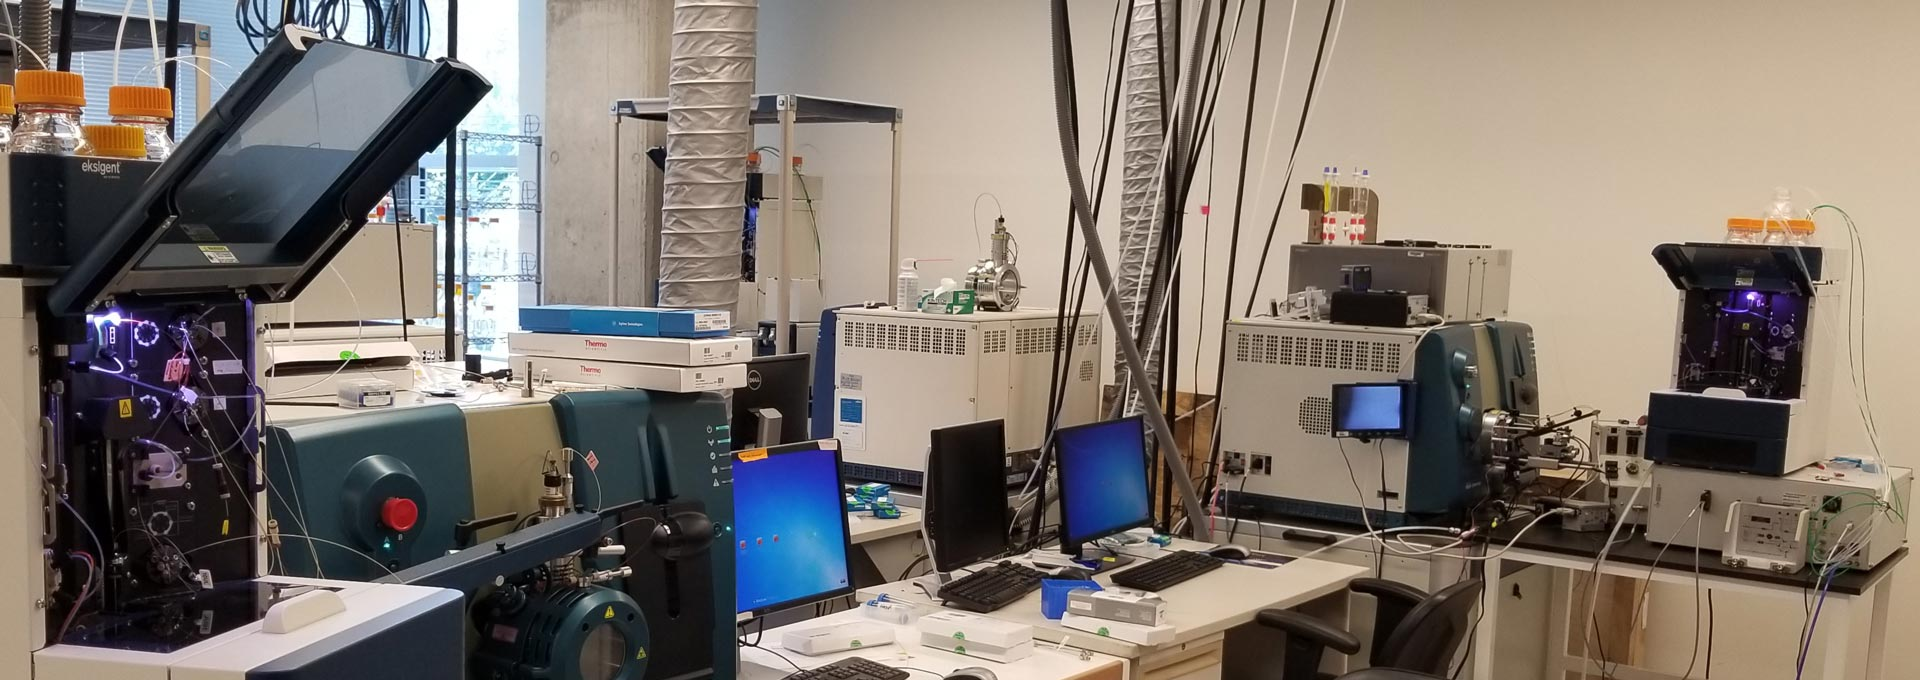 Equipment in the Paulovich lab